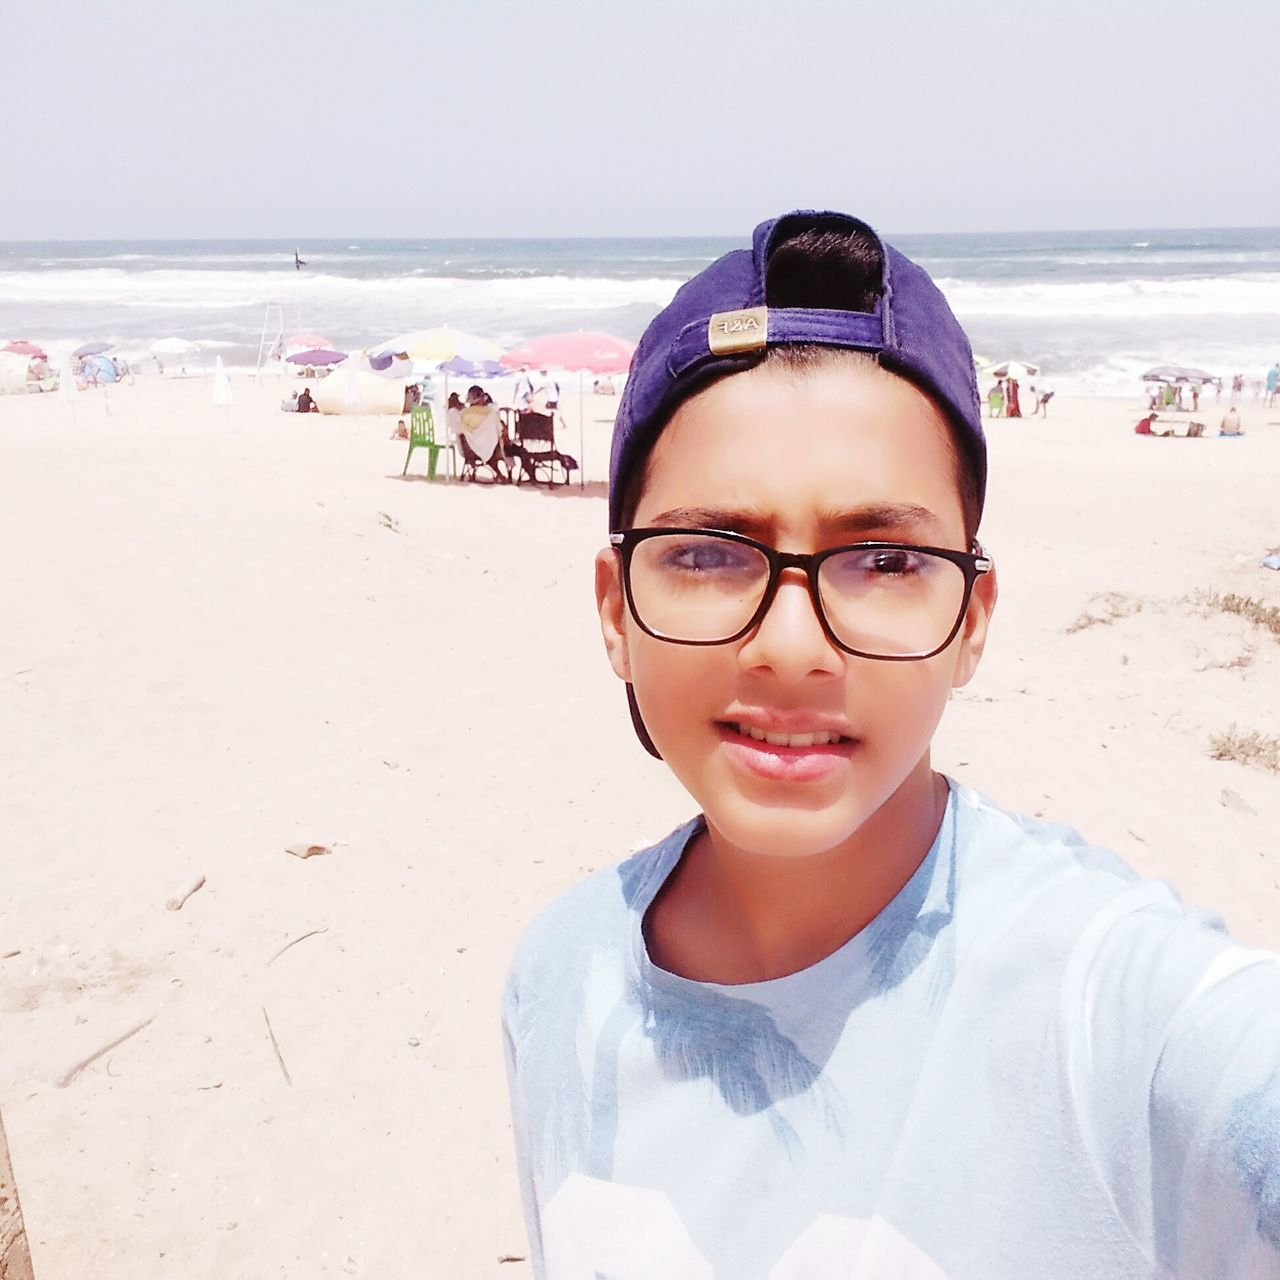 beach, real people, sea, eyeglasses, looking at camera, sand, leisure activity, shore, childhood, lifestyles, one person, portrait, outdoors, front view, vacations, day, nature, elementary age, boys, horizon over water, happiness, water, beauty in nature, sky